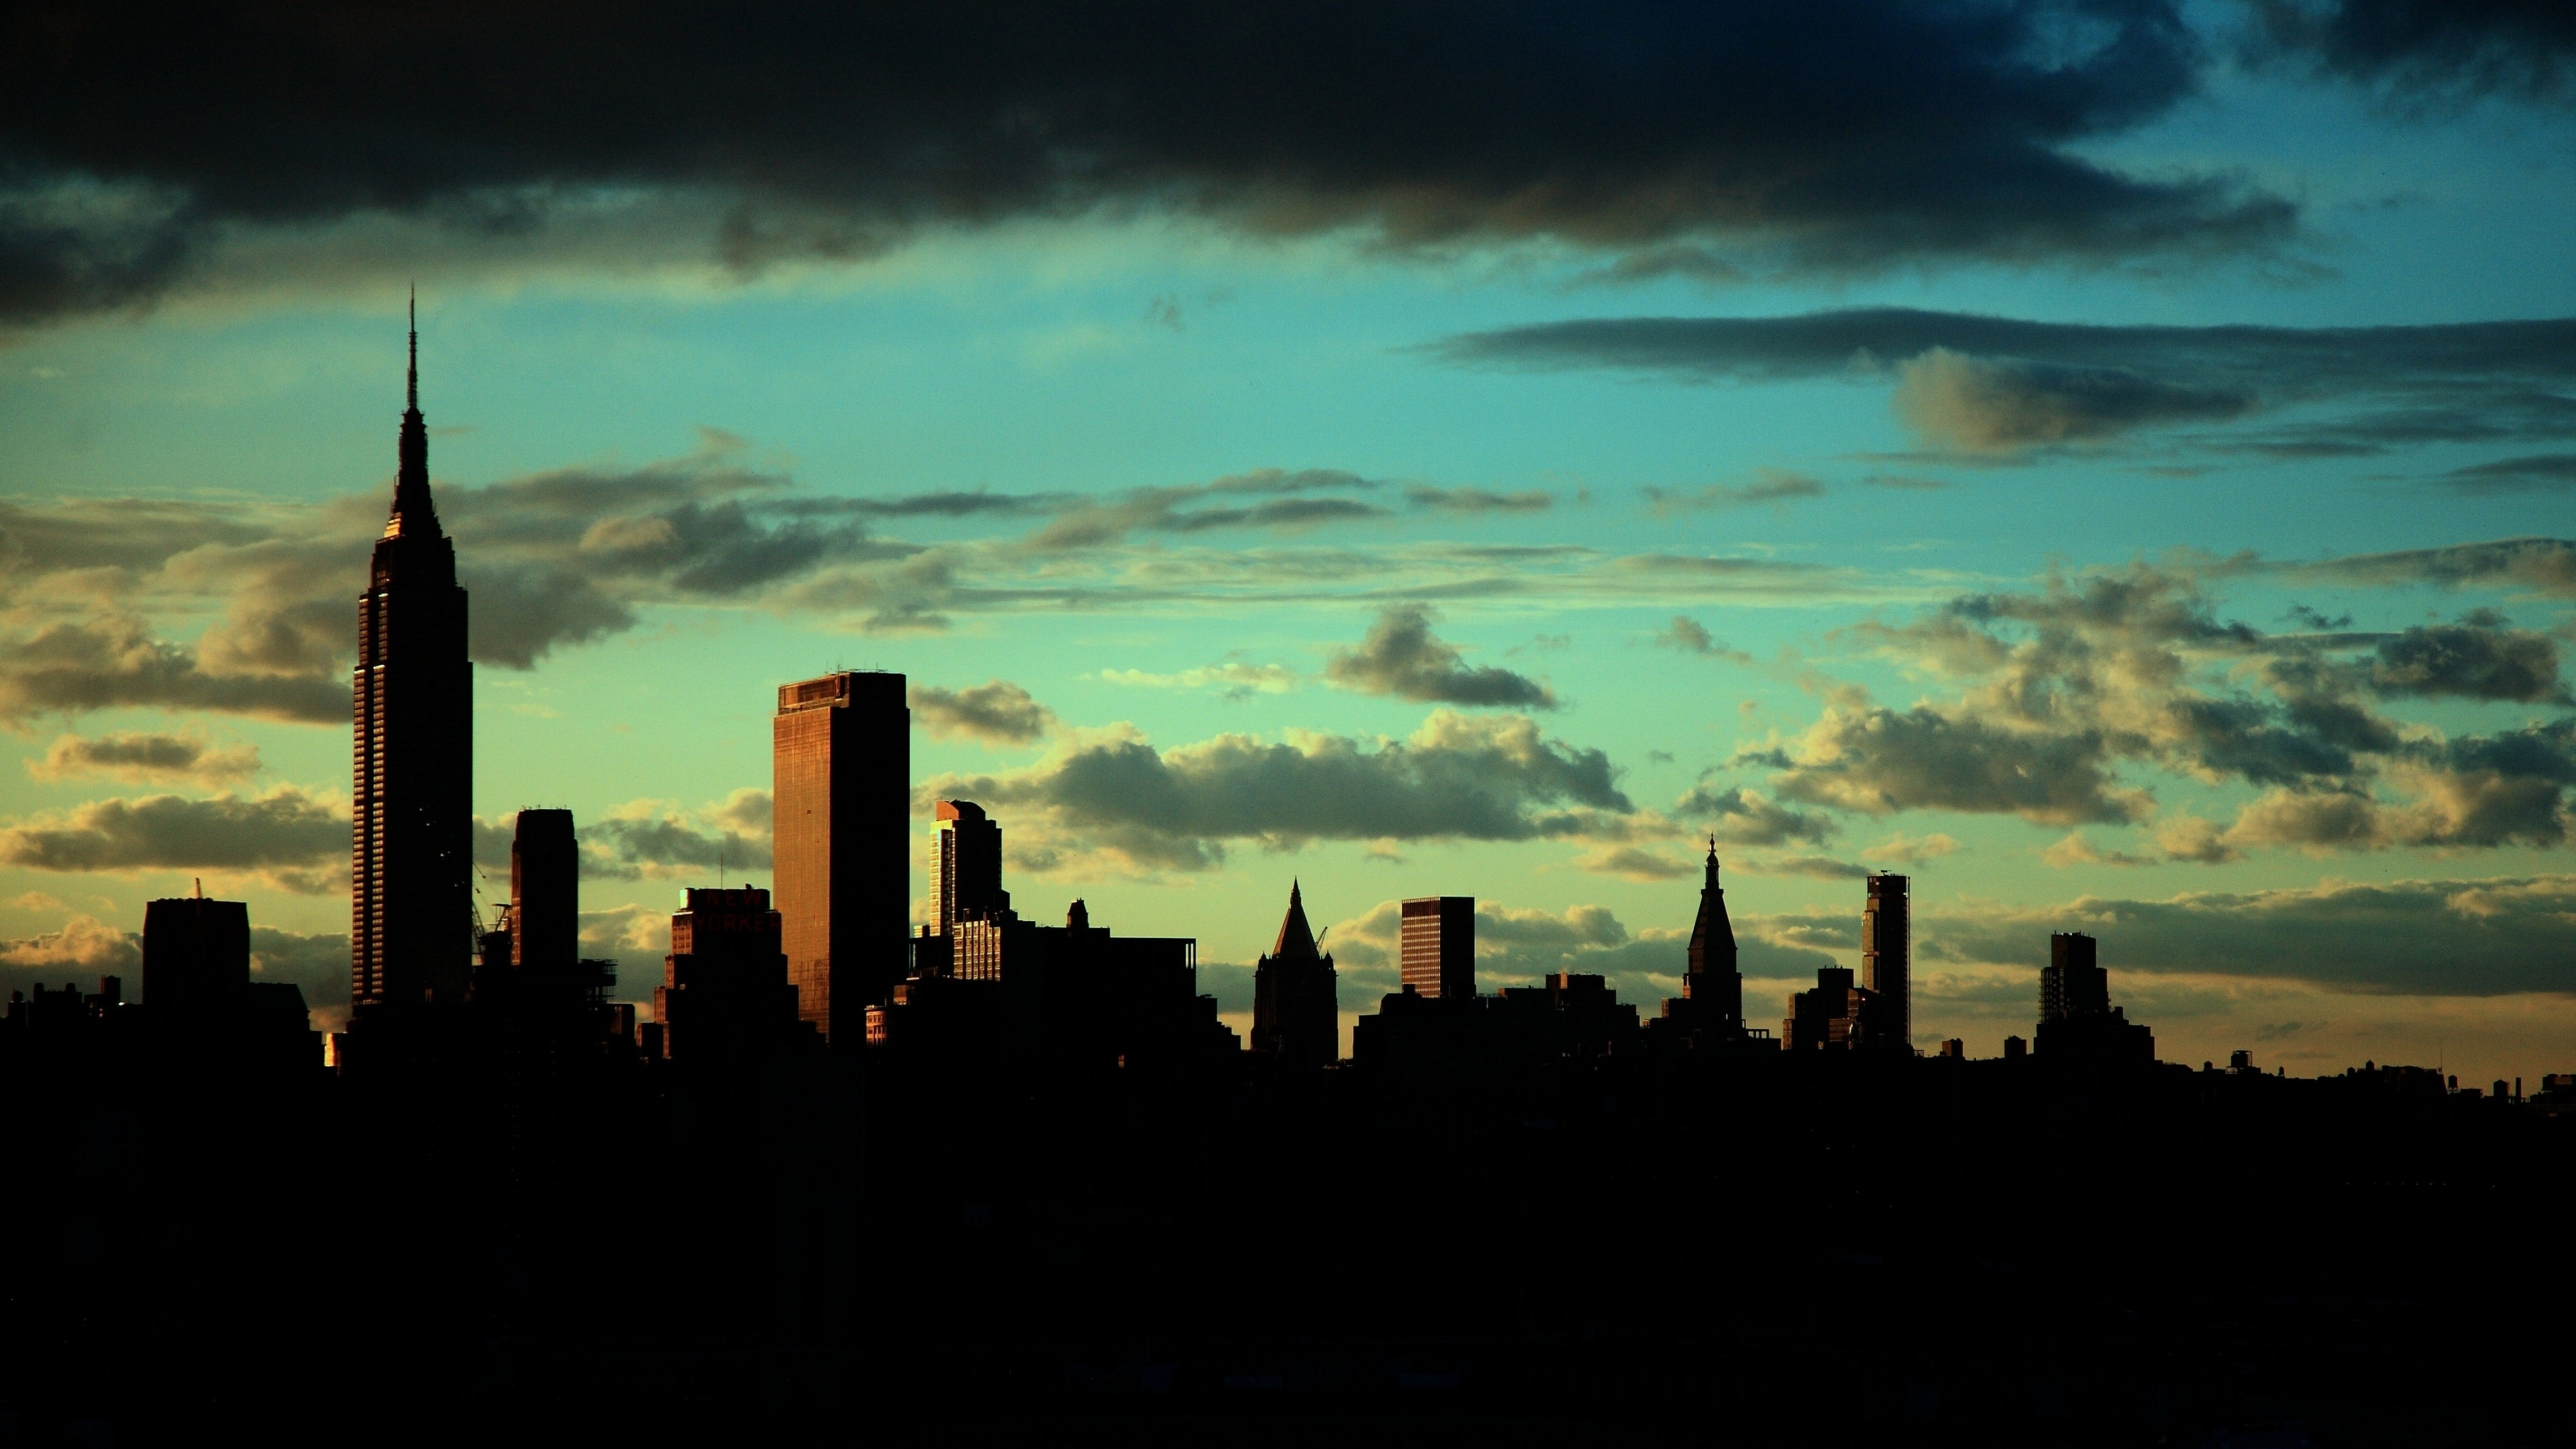 New York City Wallpaper Hd Pictures 183 ① Wallpapertag